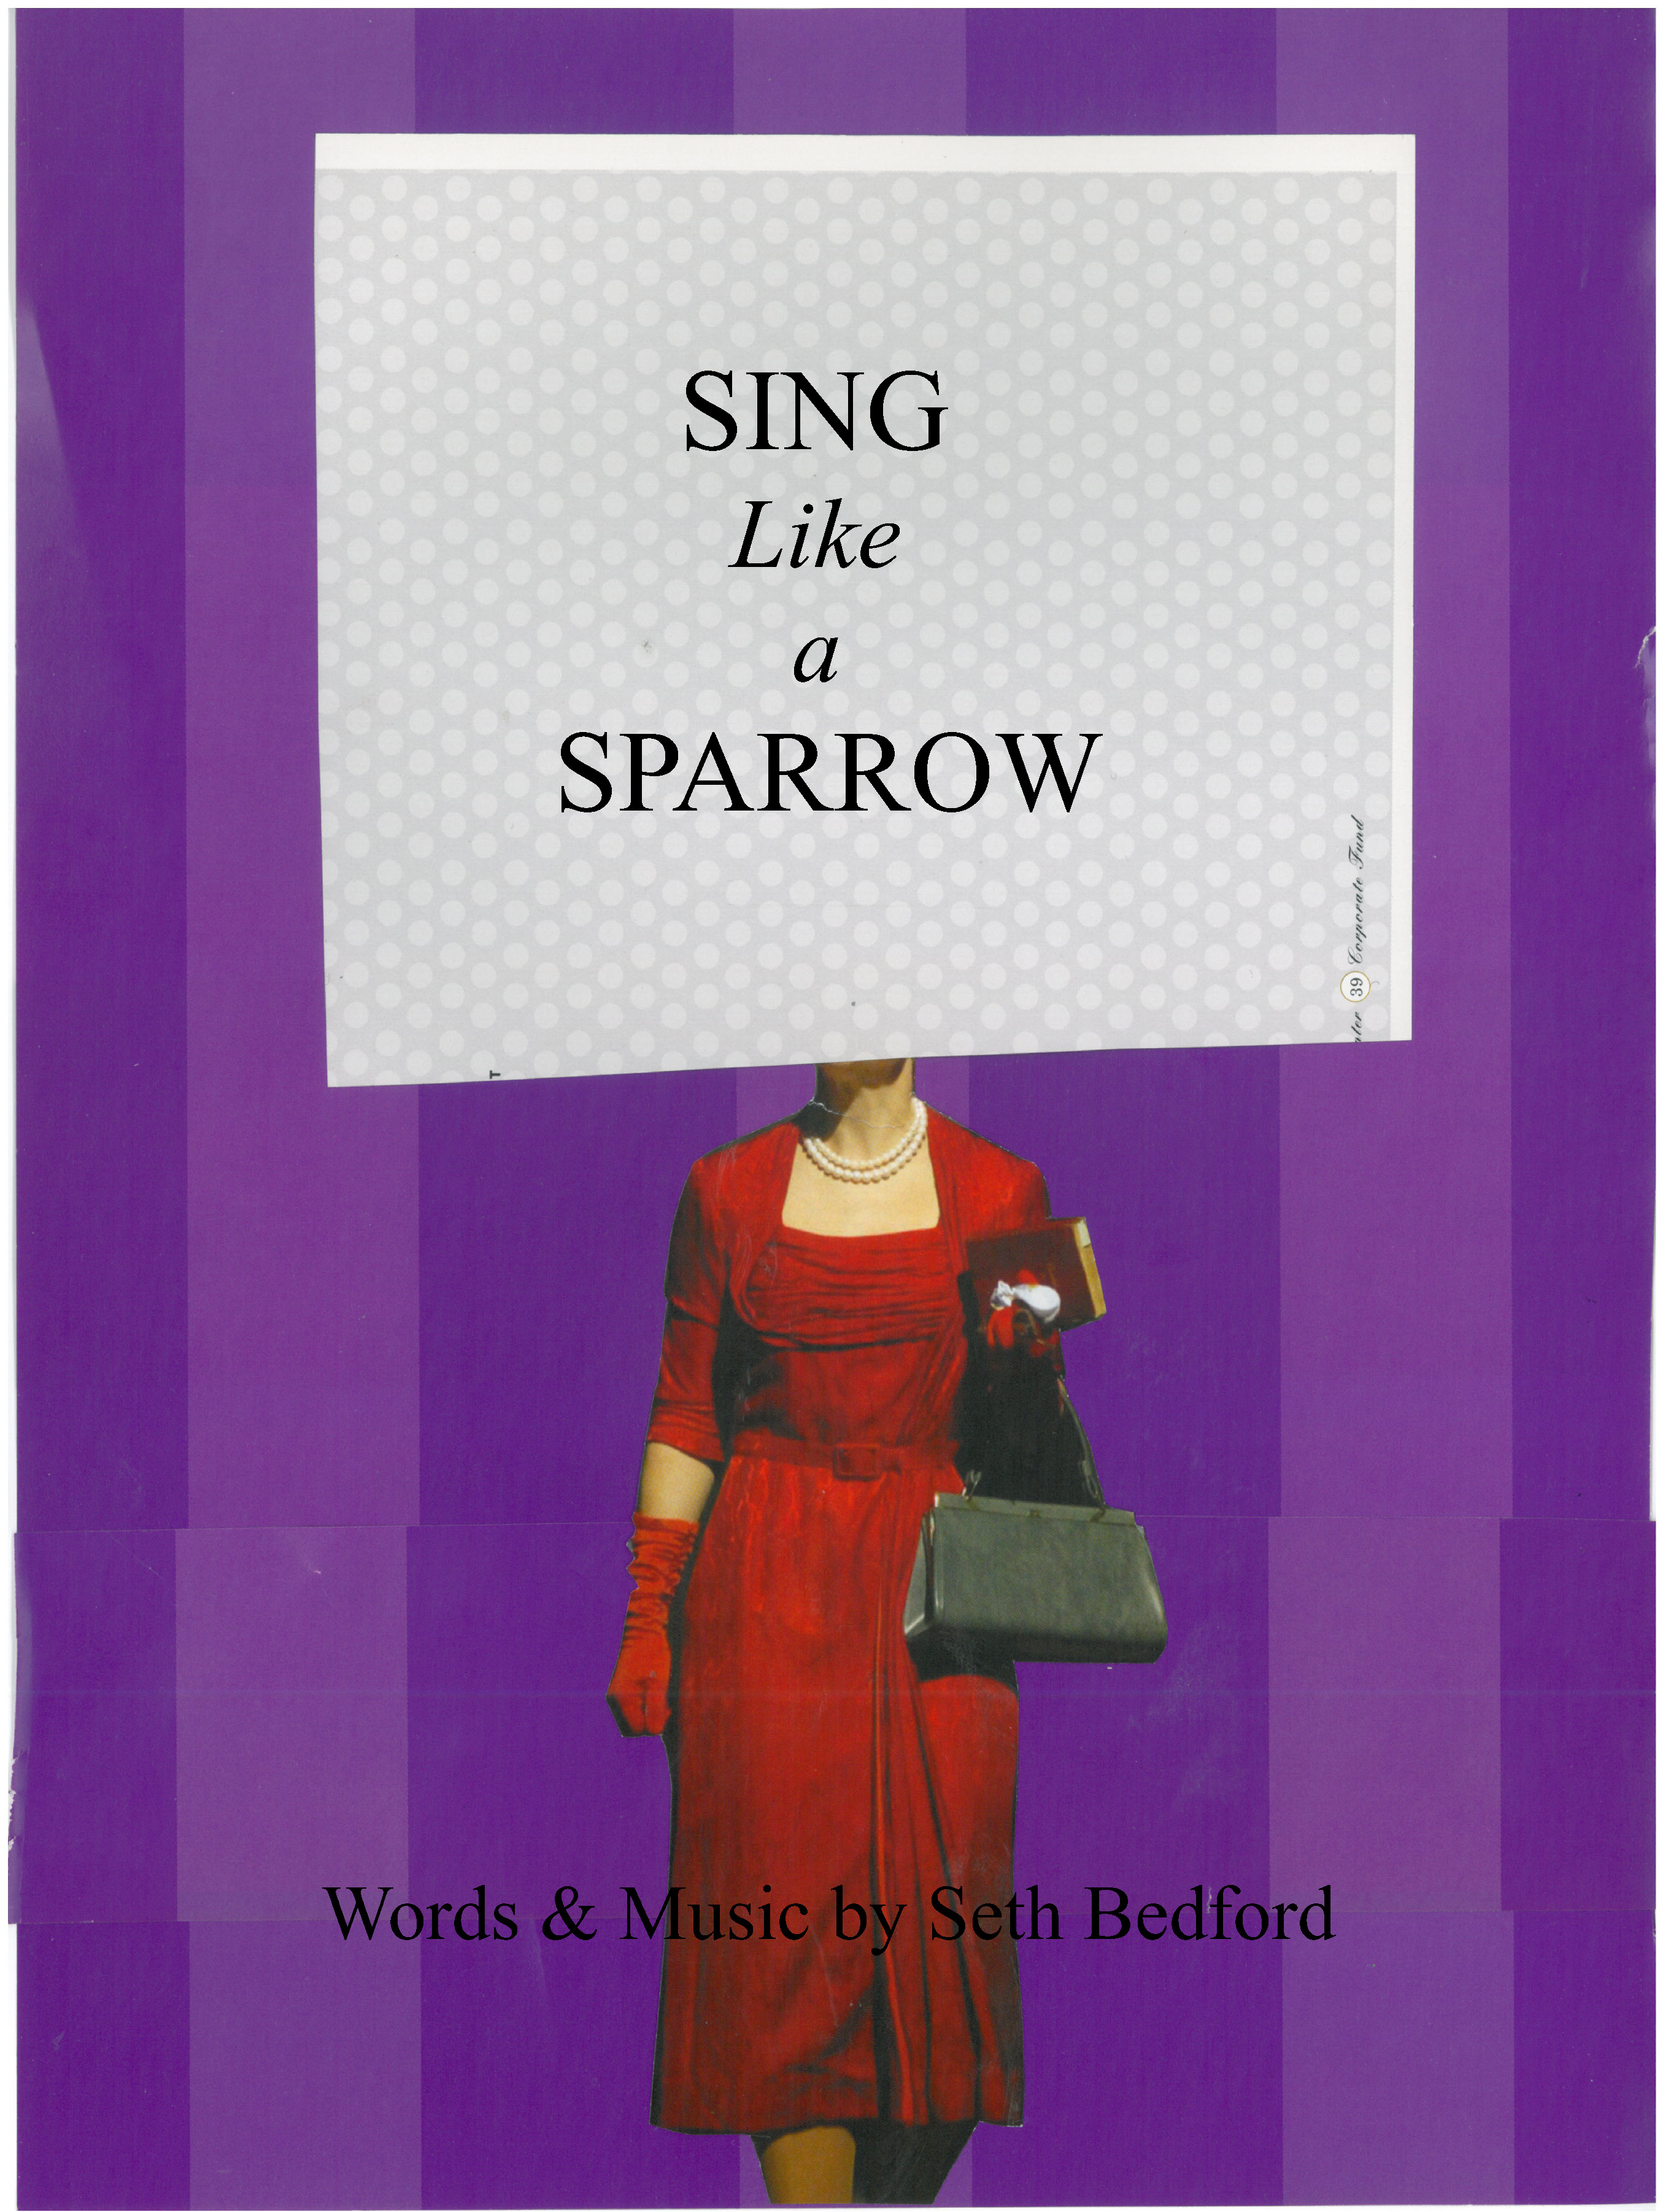 Sing like a Sparrow